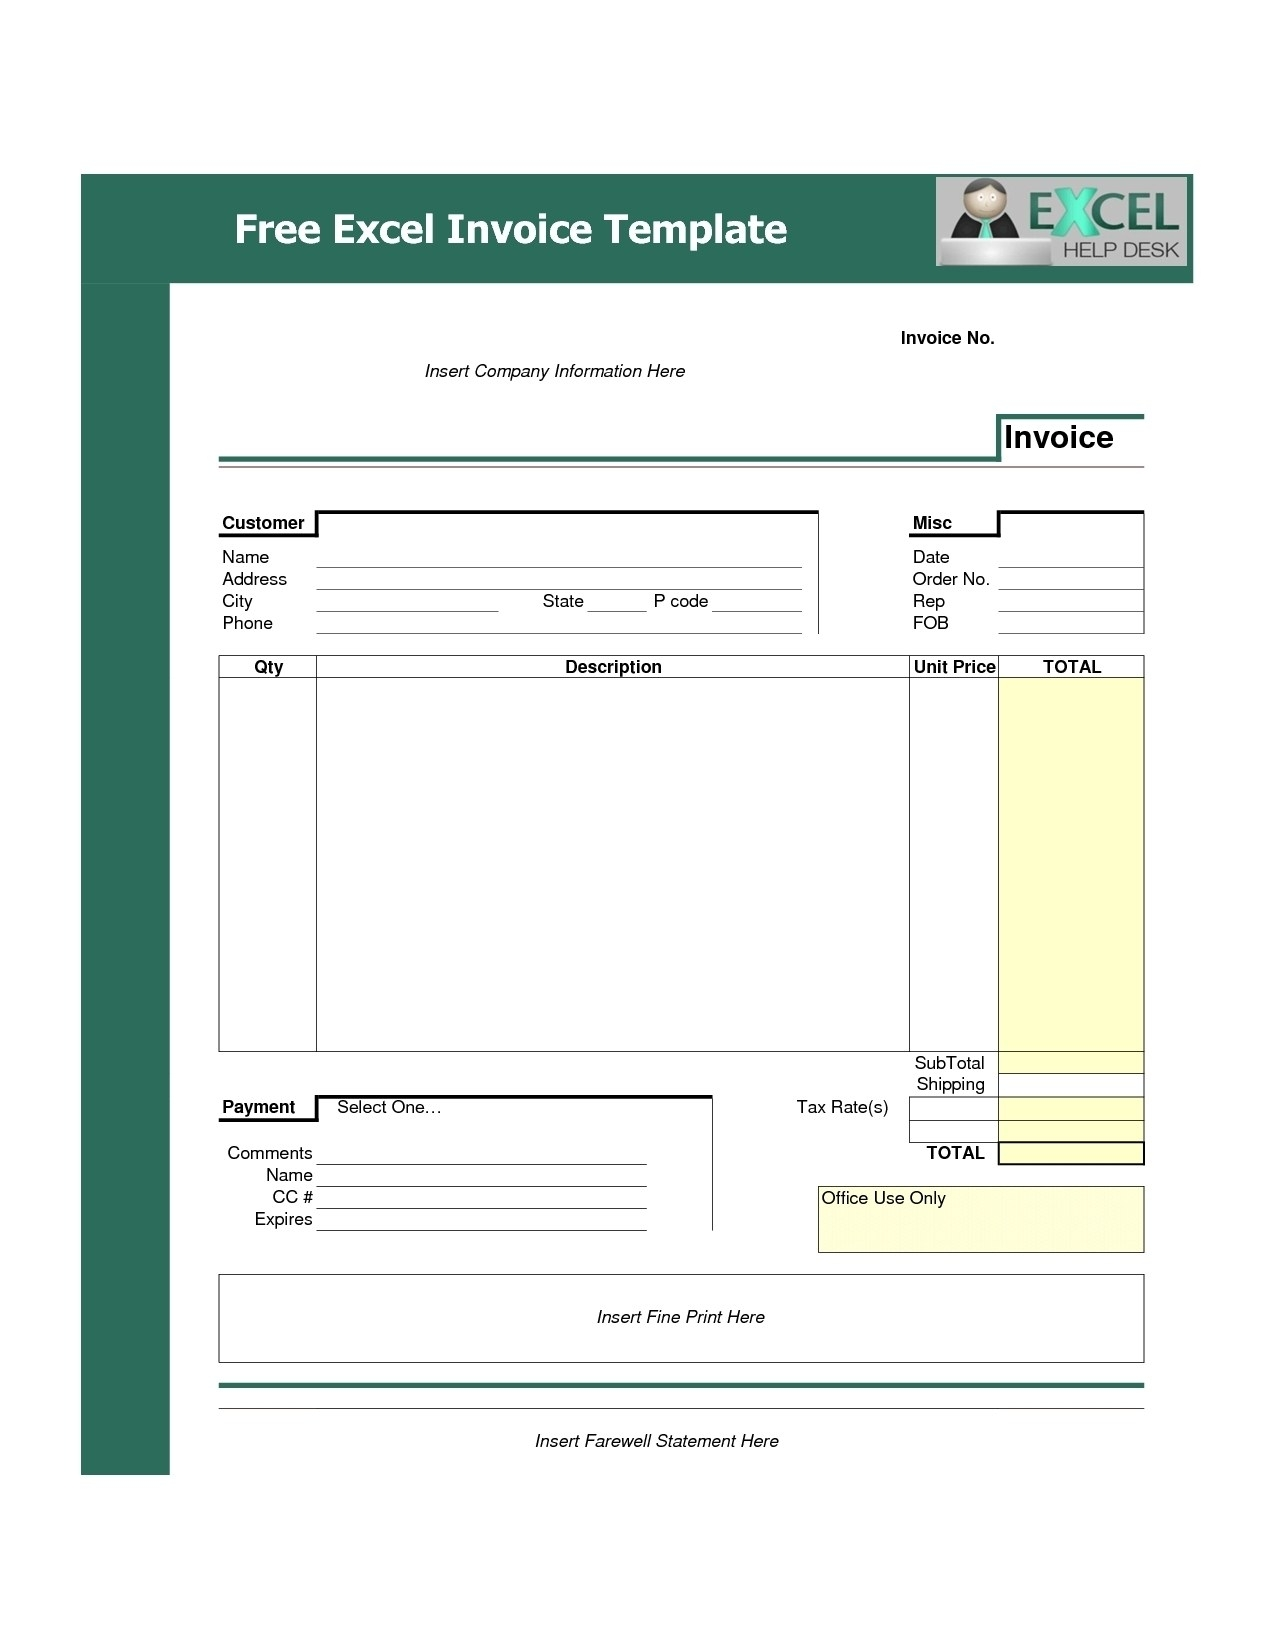 libreoffice invoice template libreoffice invoice template open office download free uk 1275 X 1650